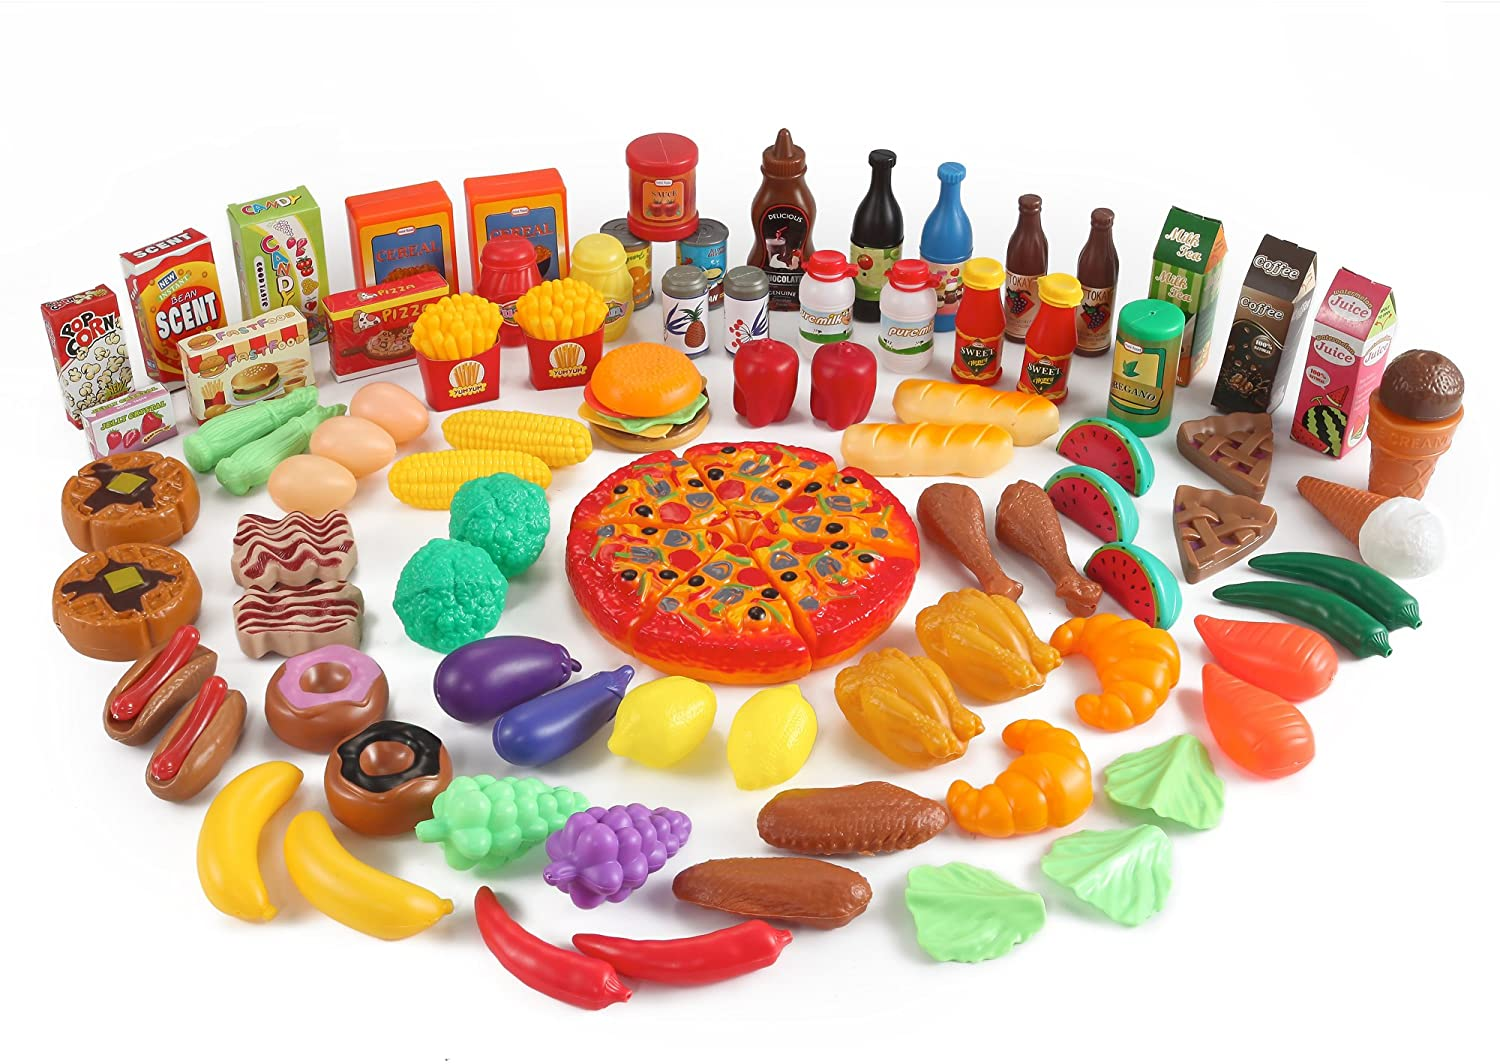 Value Pack Groceries and Meals Play Food Set (101 Pcs)